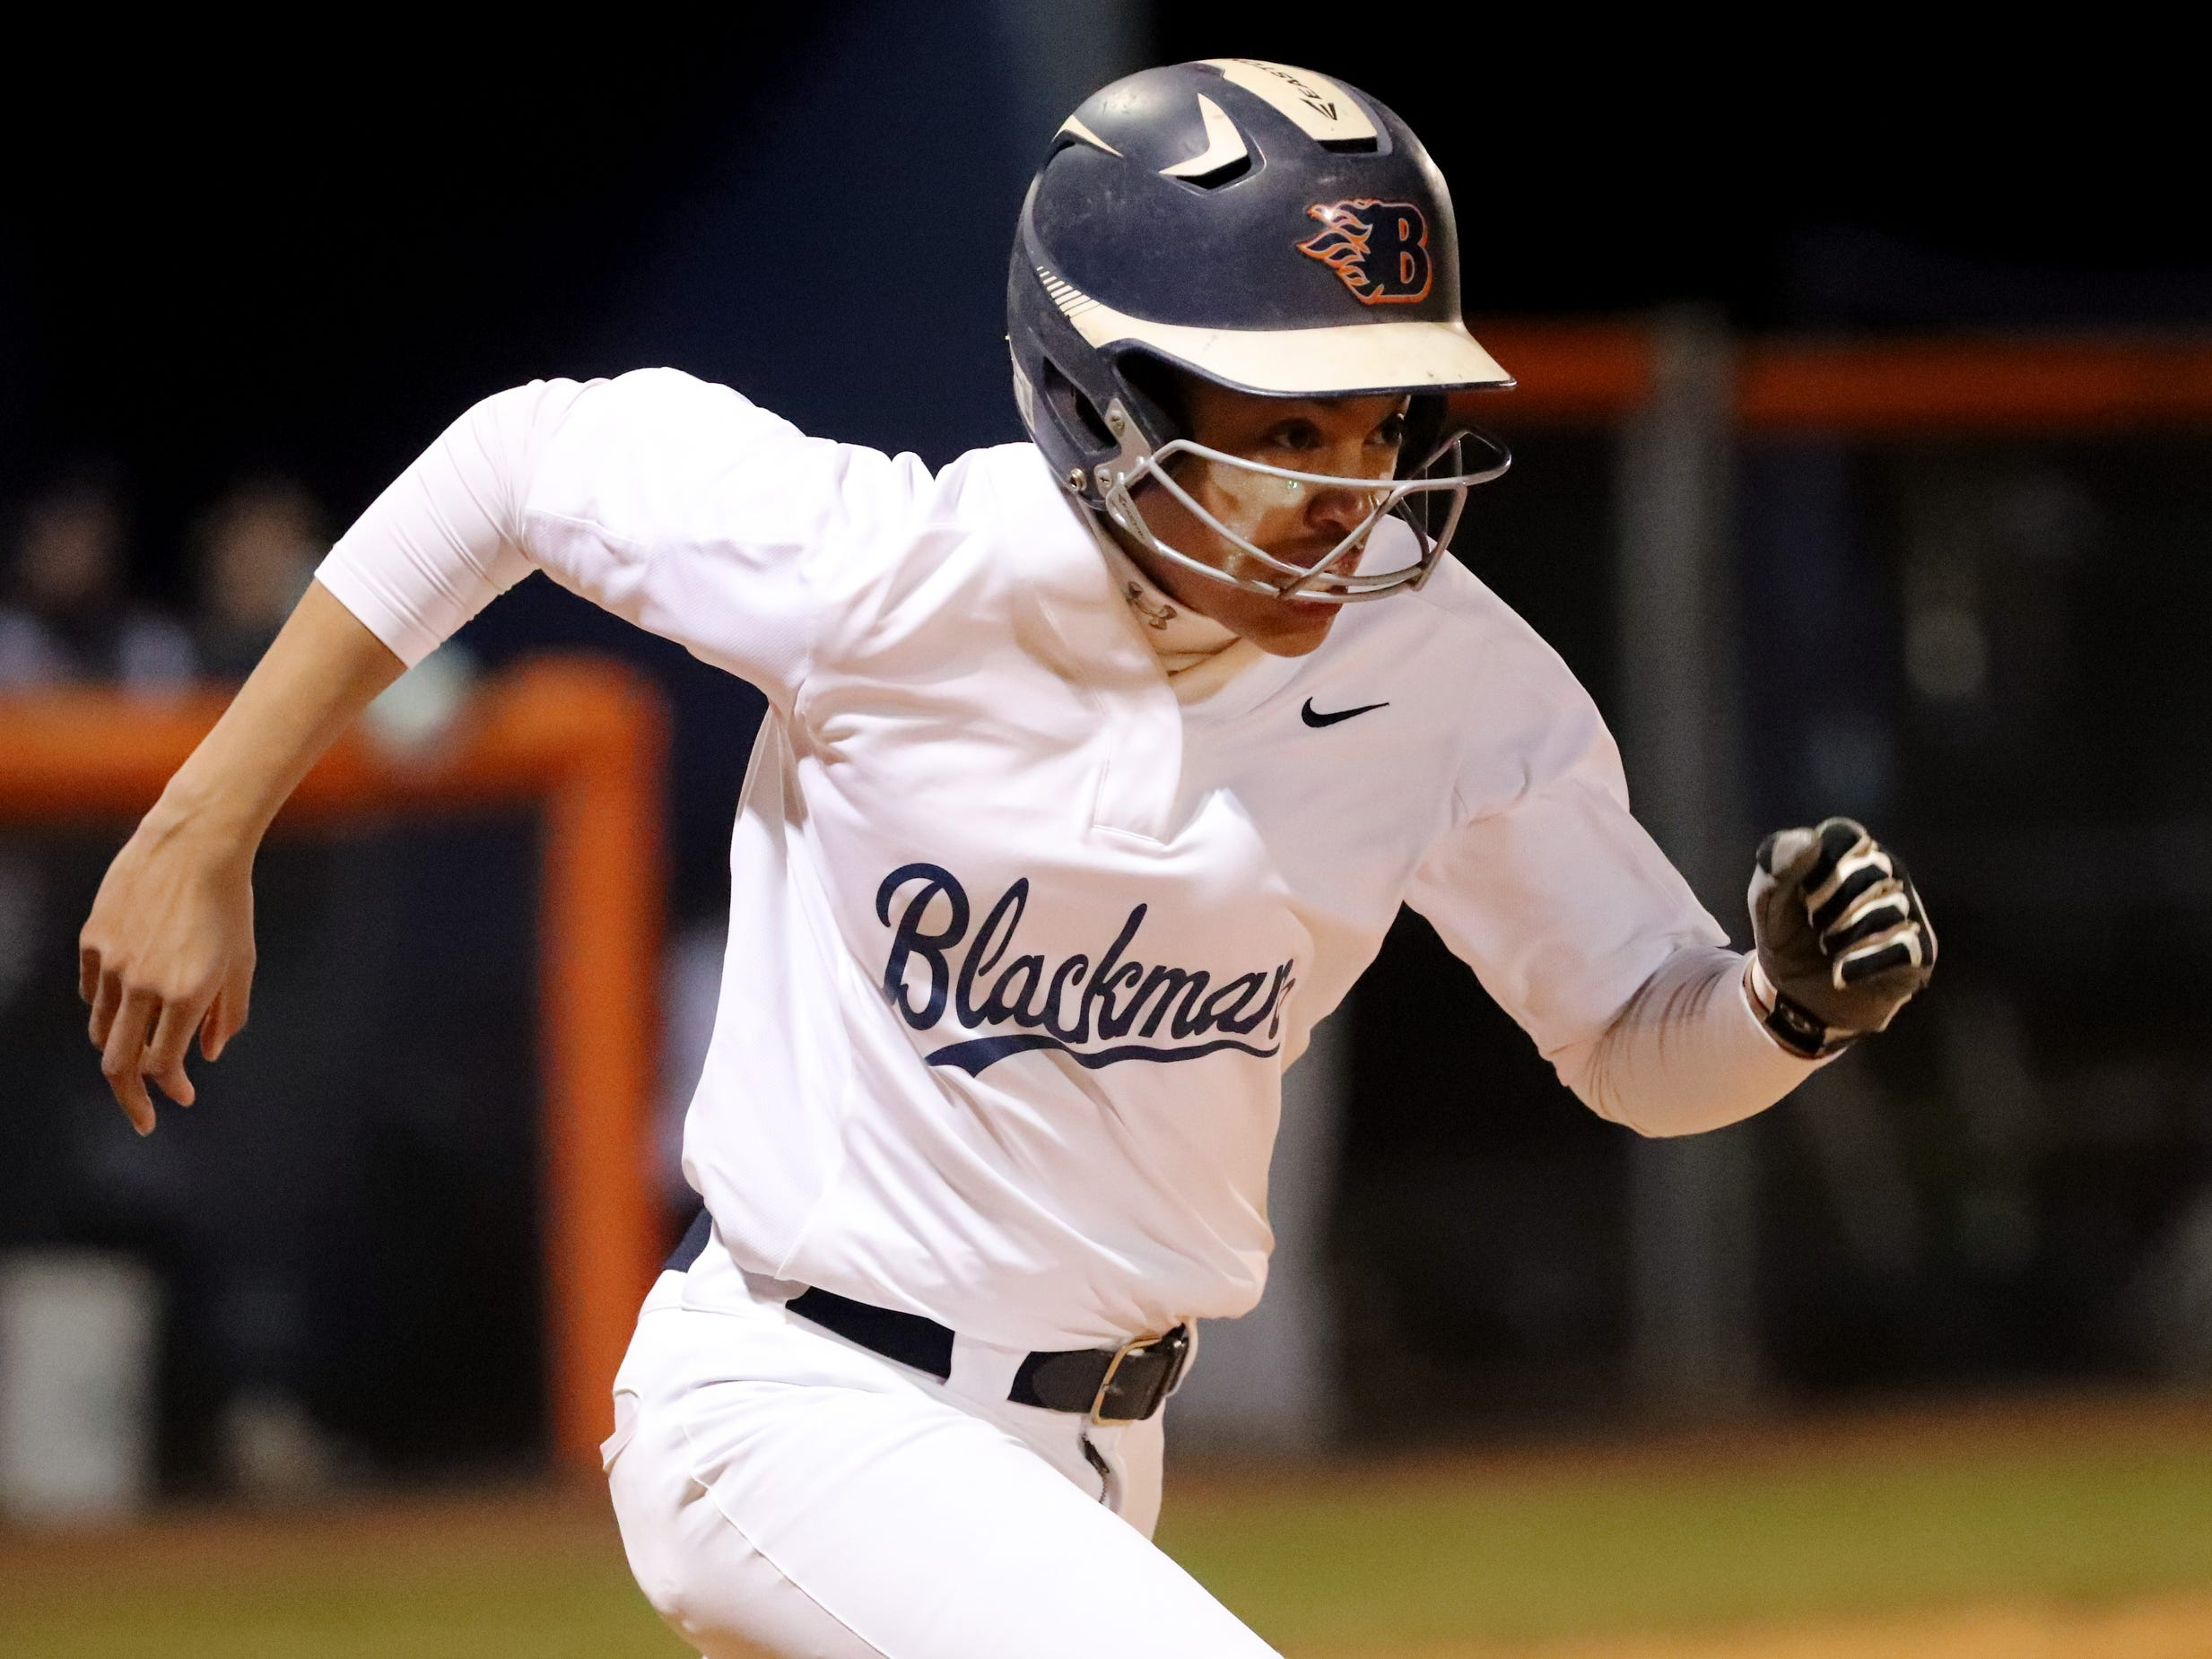 Blackman's Kalei Harding (8) runs to first base during the game against Siegel, on Monday, March 18, 2019, at Blackman.